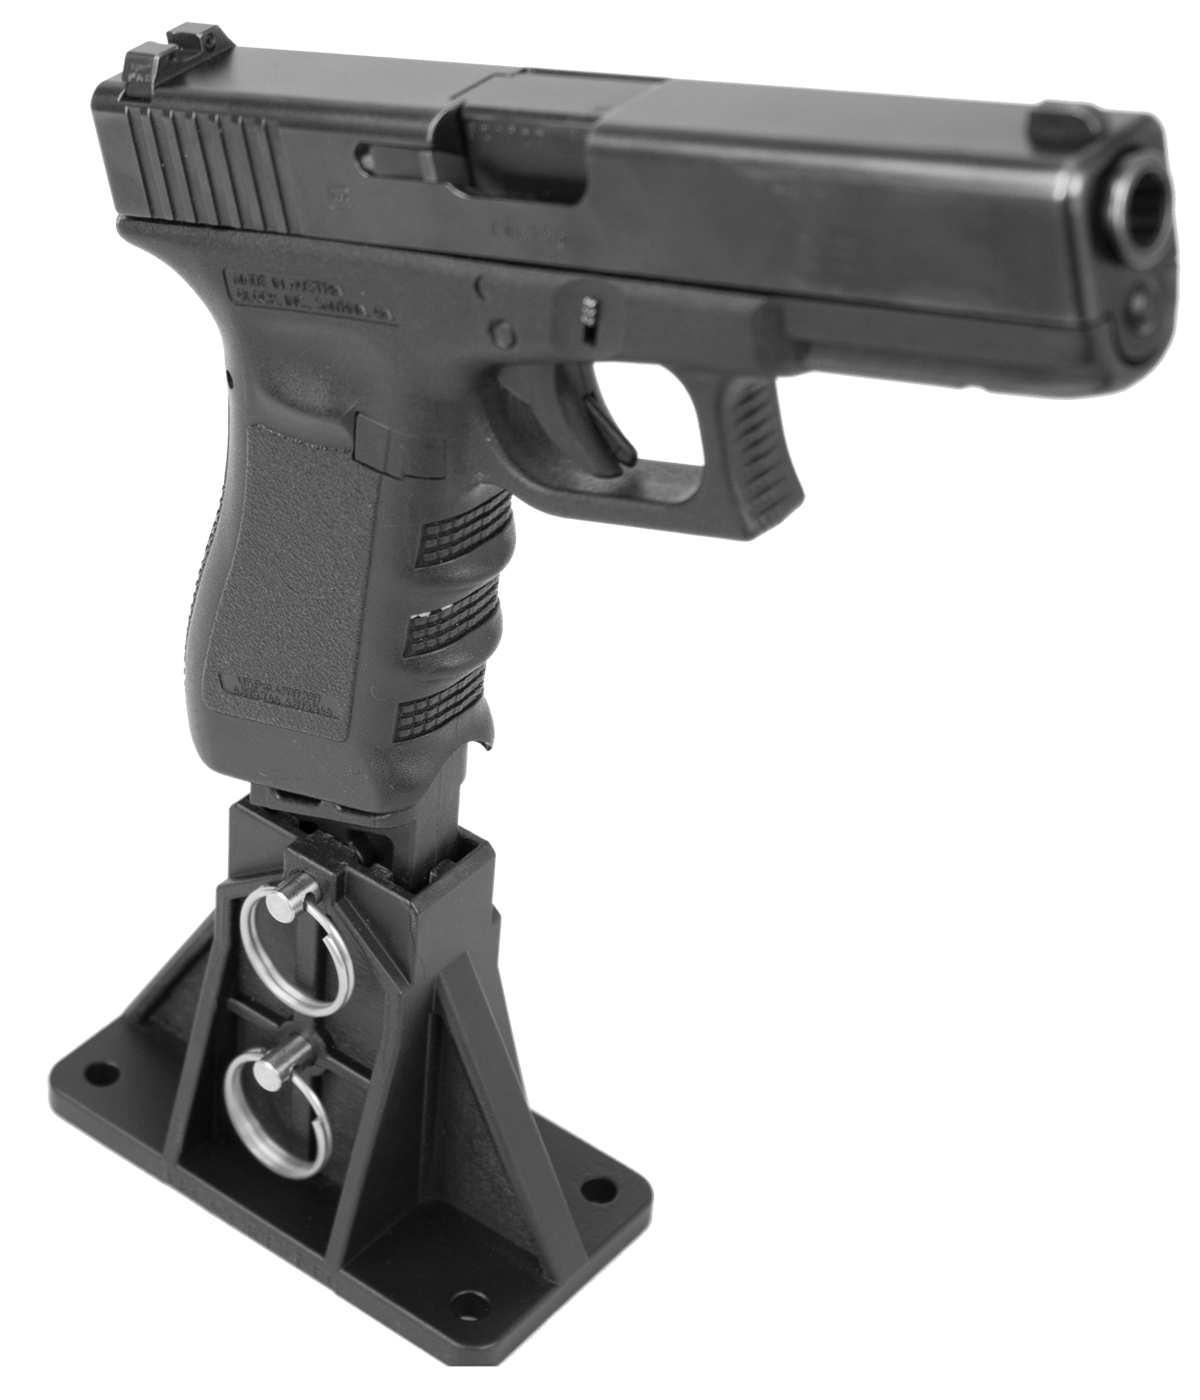 The MAST allows Glock owners to service, clean and display their favorite polymer pistol. (Photo: Ergo)